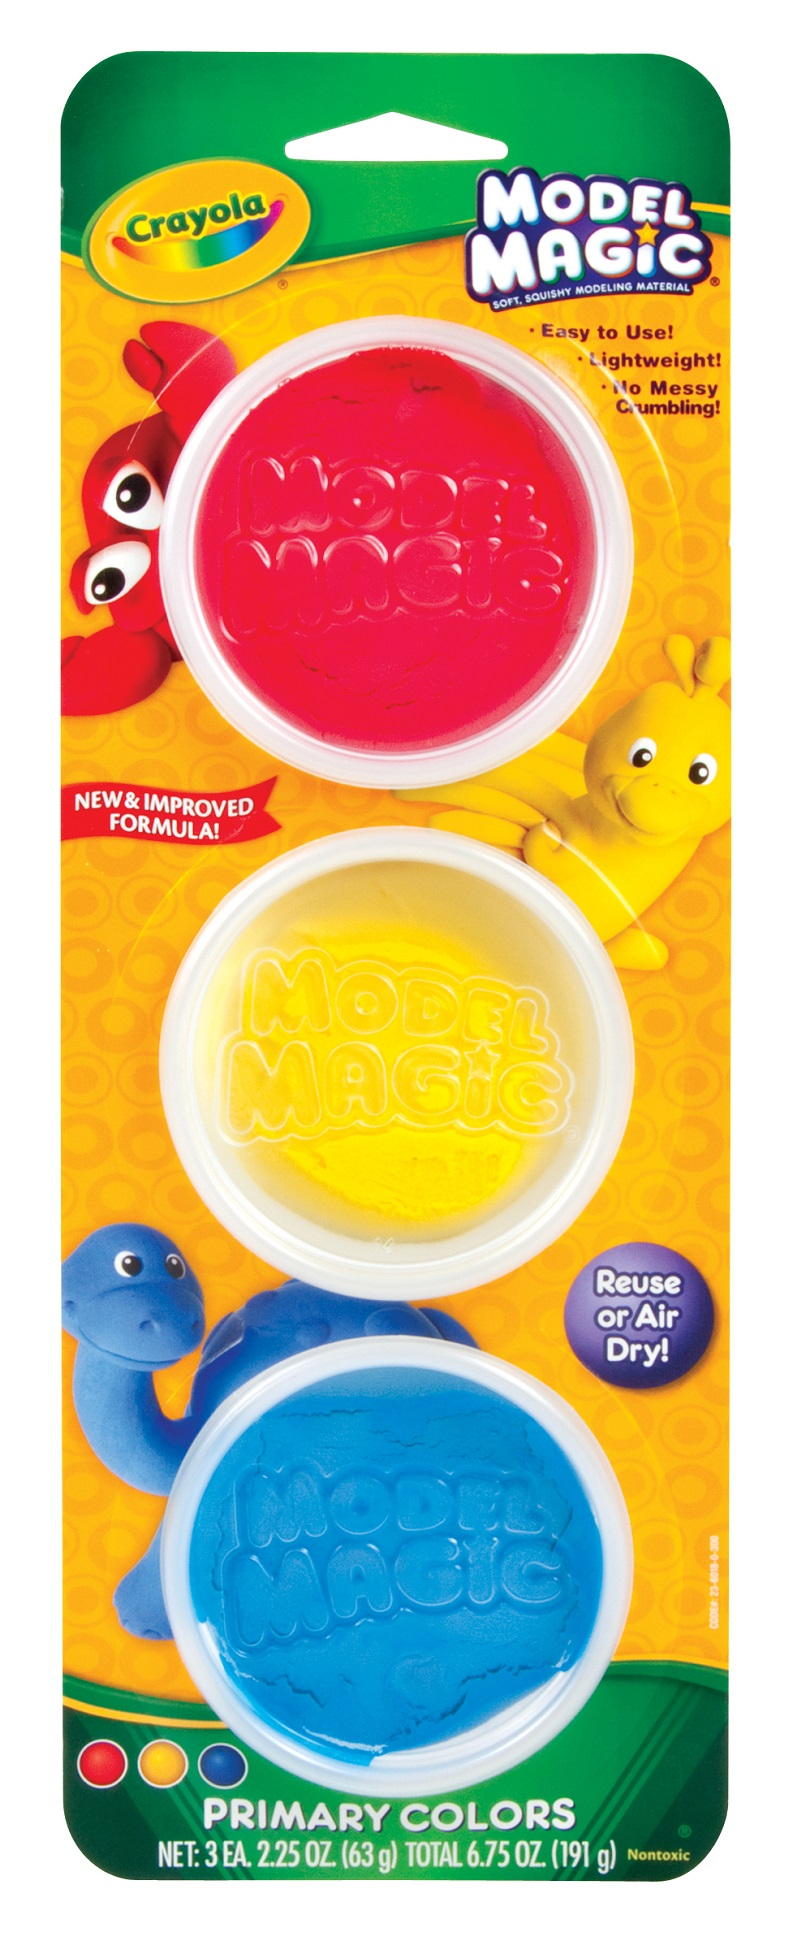 Crayola Model Magic Reusable Tubs Primary Colors 3 Ct 2